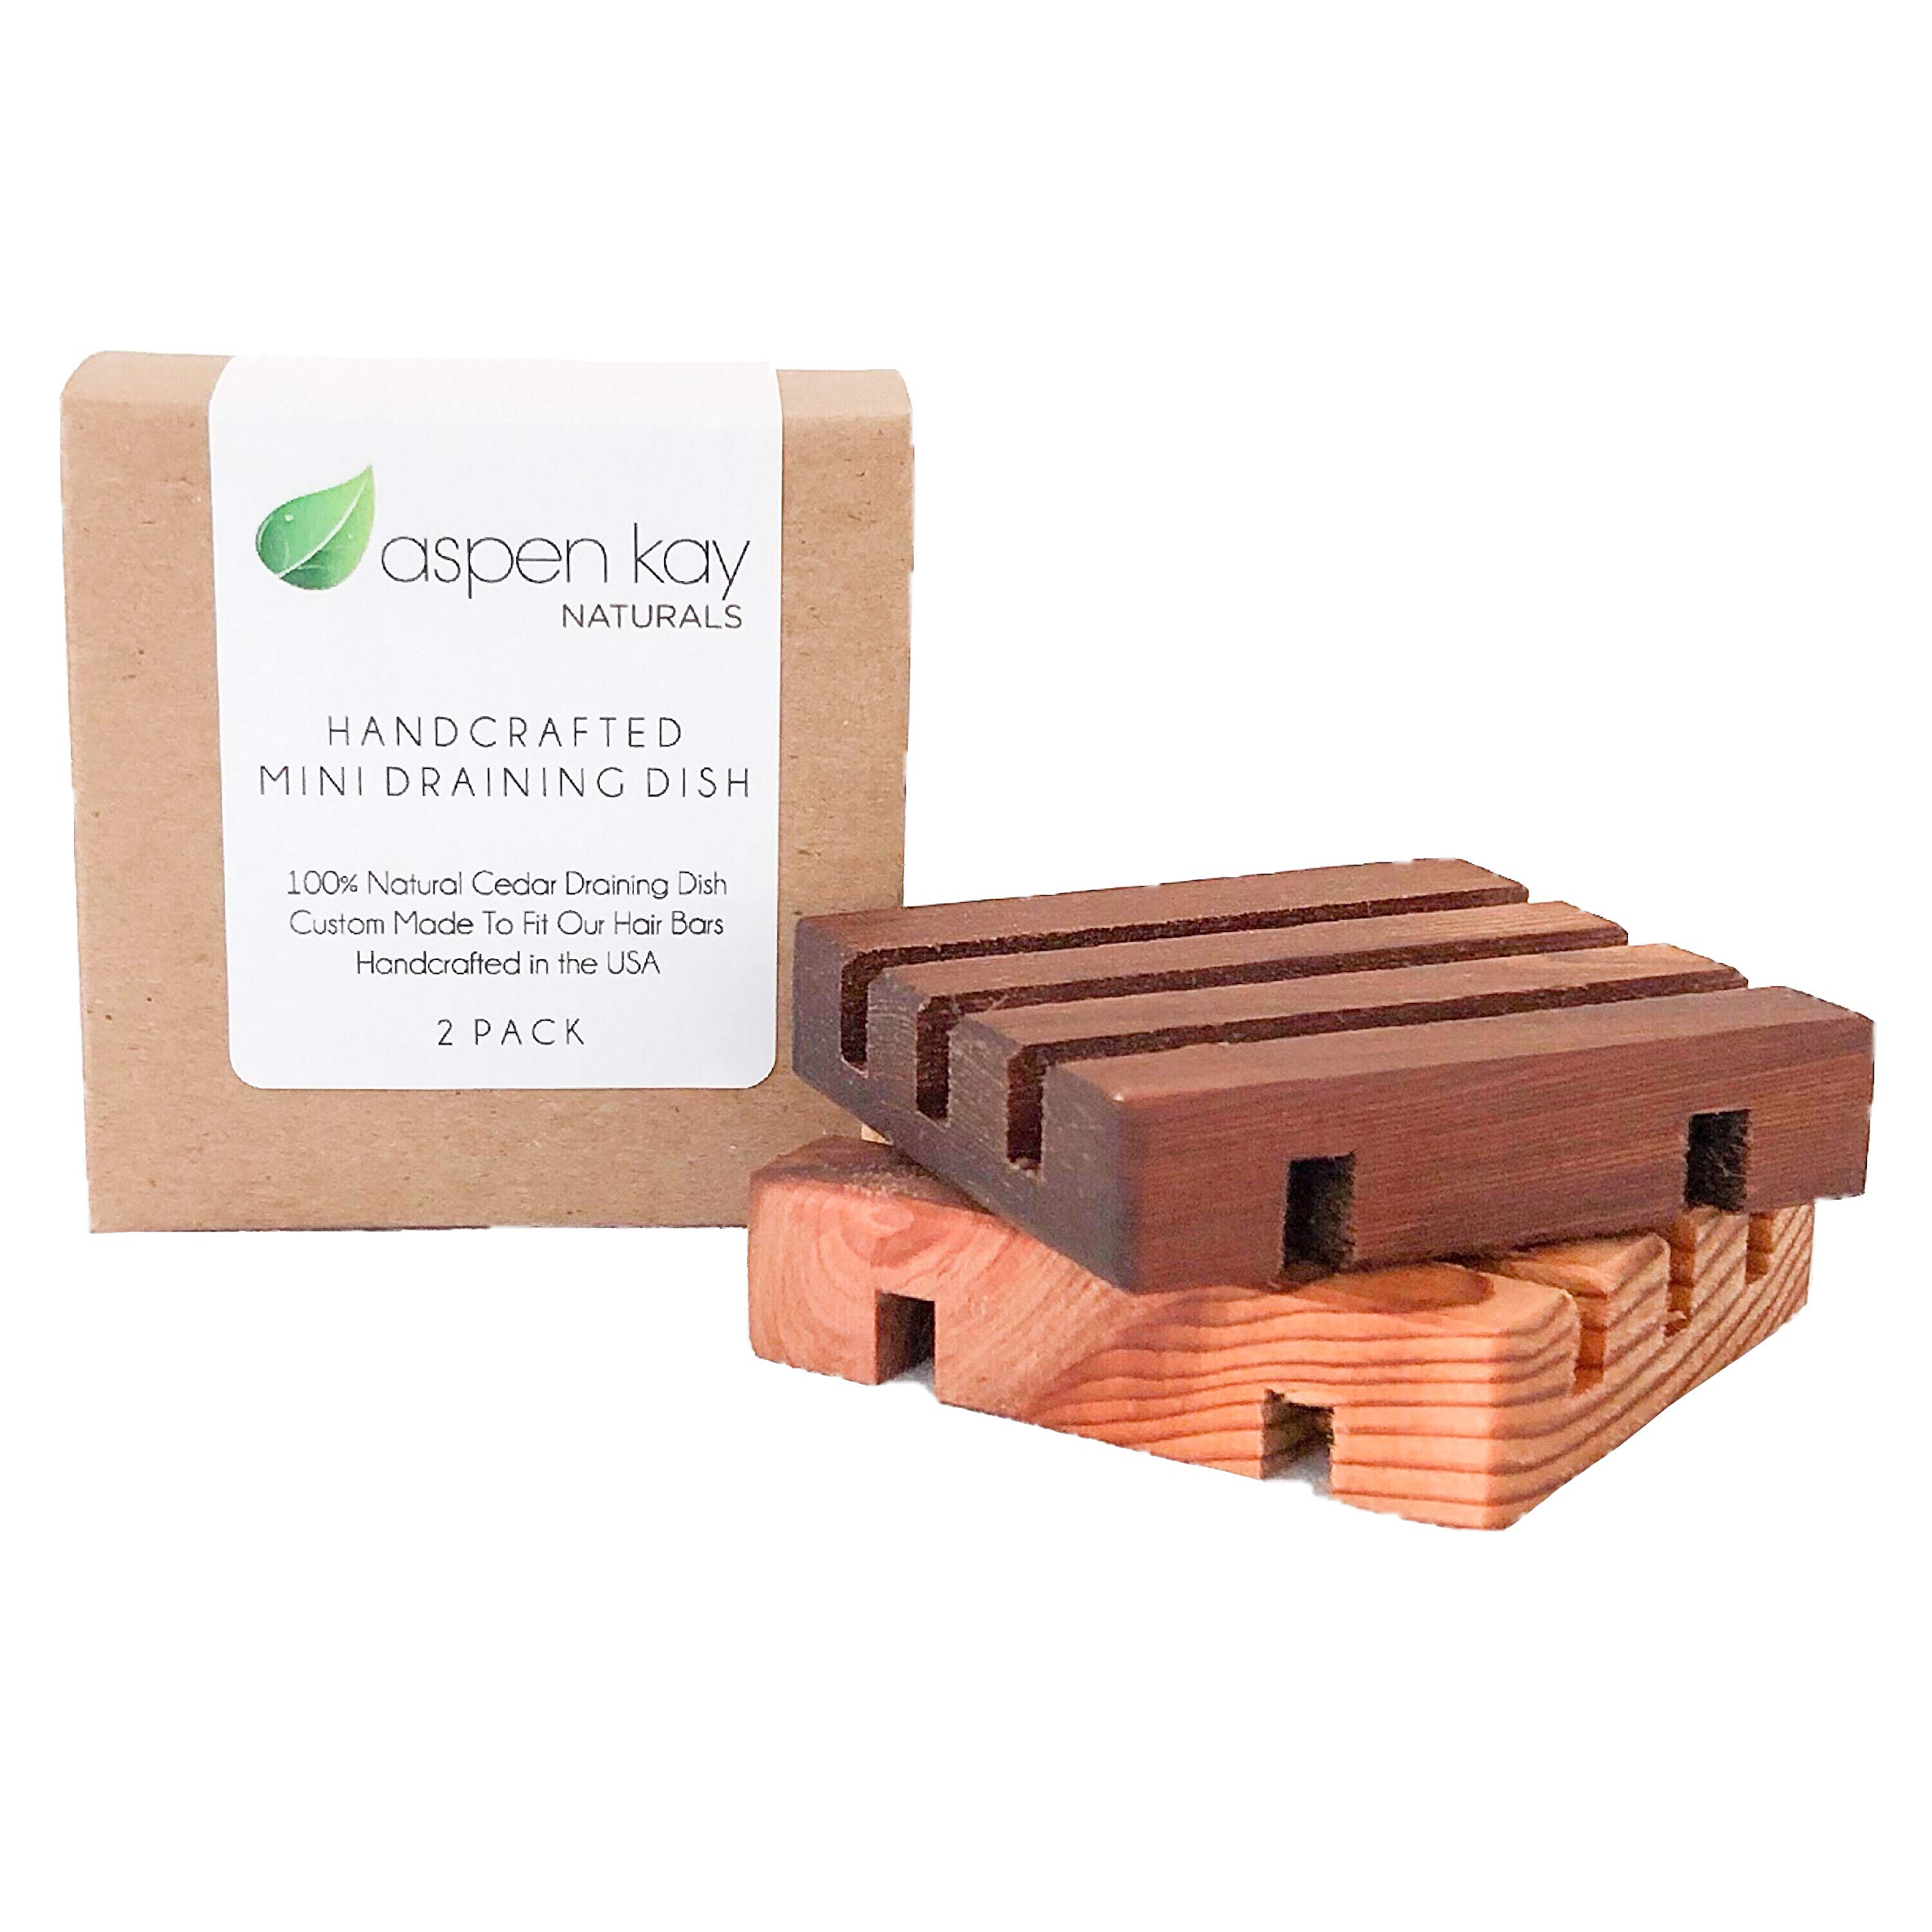 2 Pack Mini Soap Dish, Draining Dish for Our Shampoo Bars & Conditioner Bars, 100% Natural Cedar, No Chemical Varnish, Lacquer or Stain is Used, Custom Made for Our Hair Bars, Handmade in The USA